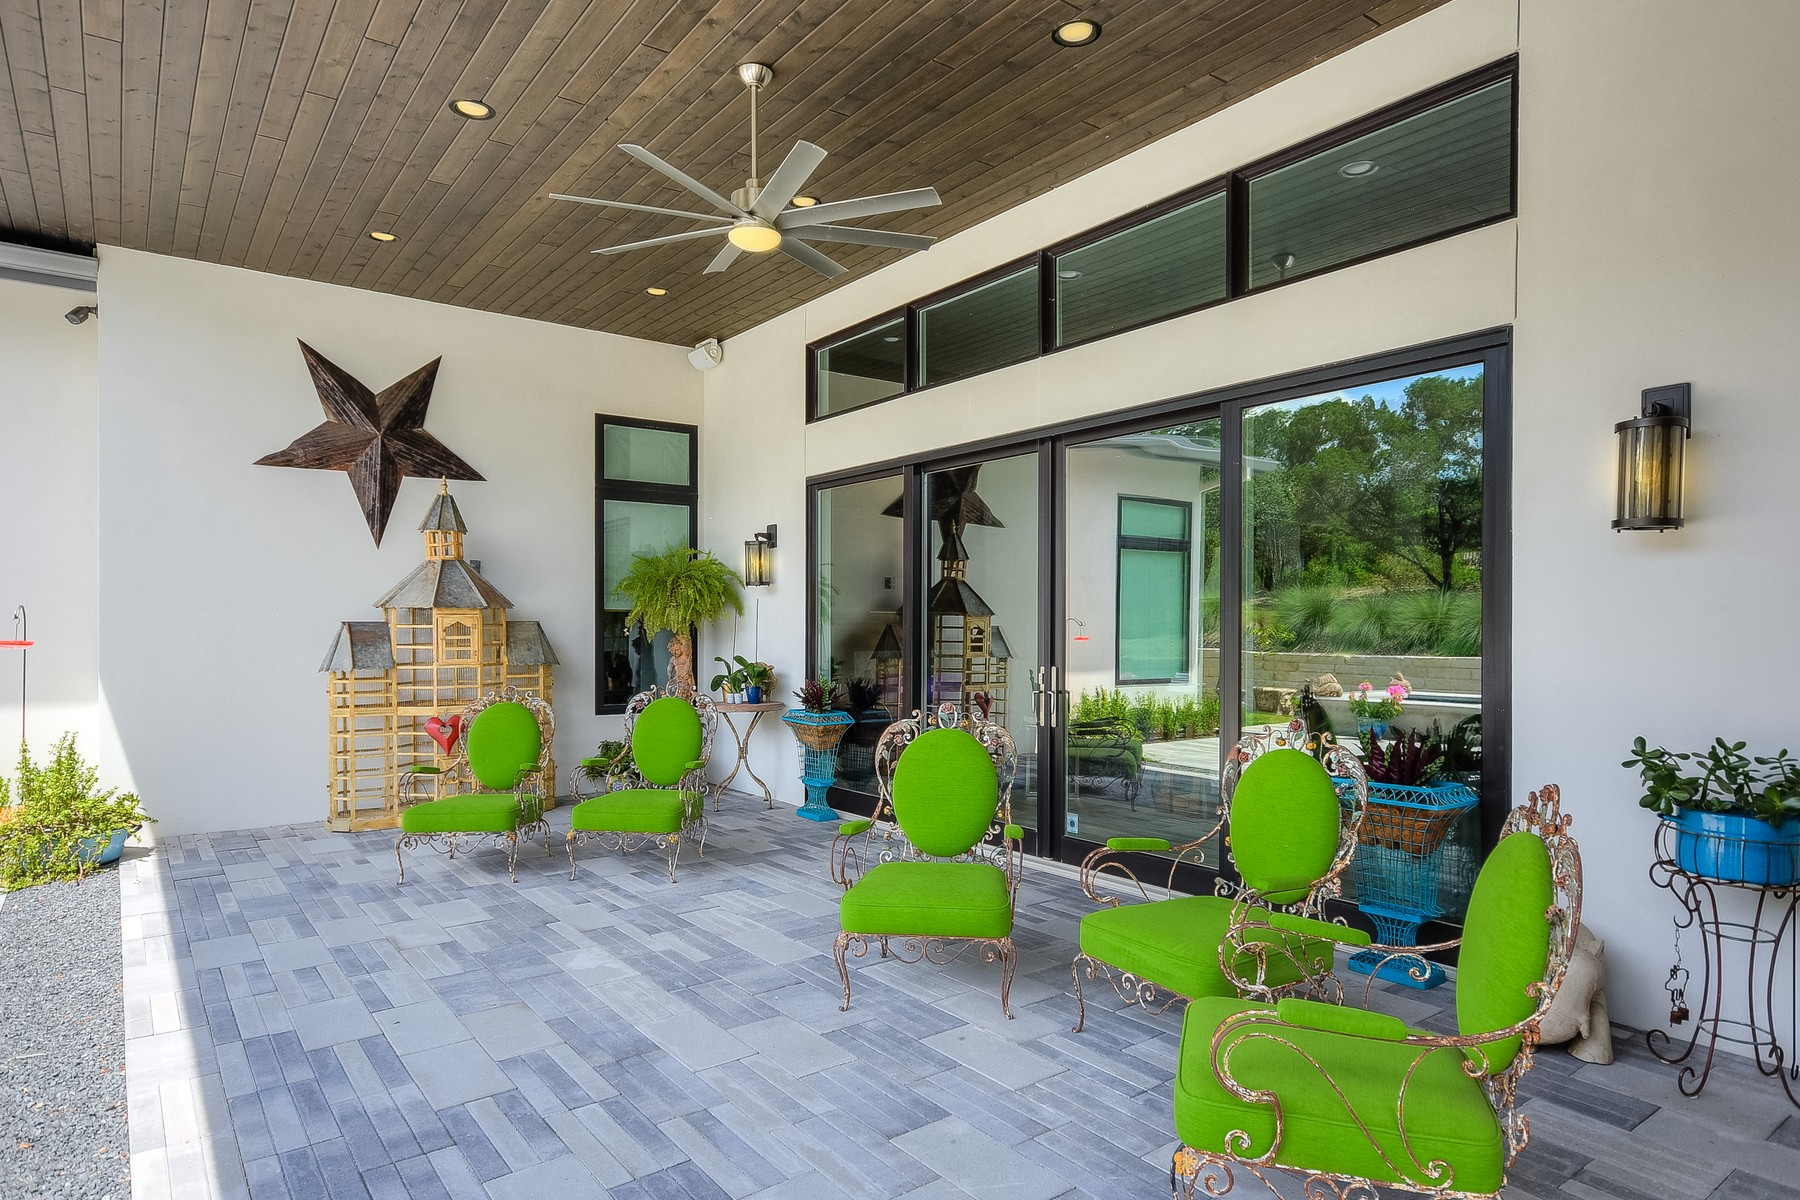 Additional photo for property listing at Whimsical Modern Retreat in Coveted Barton Creek 4312 Verano Dr Austin, Texas 78735 United States